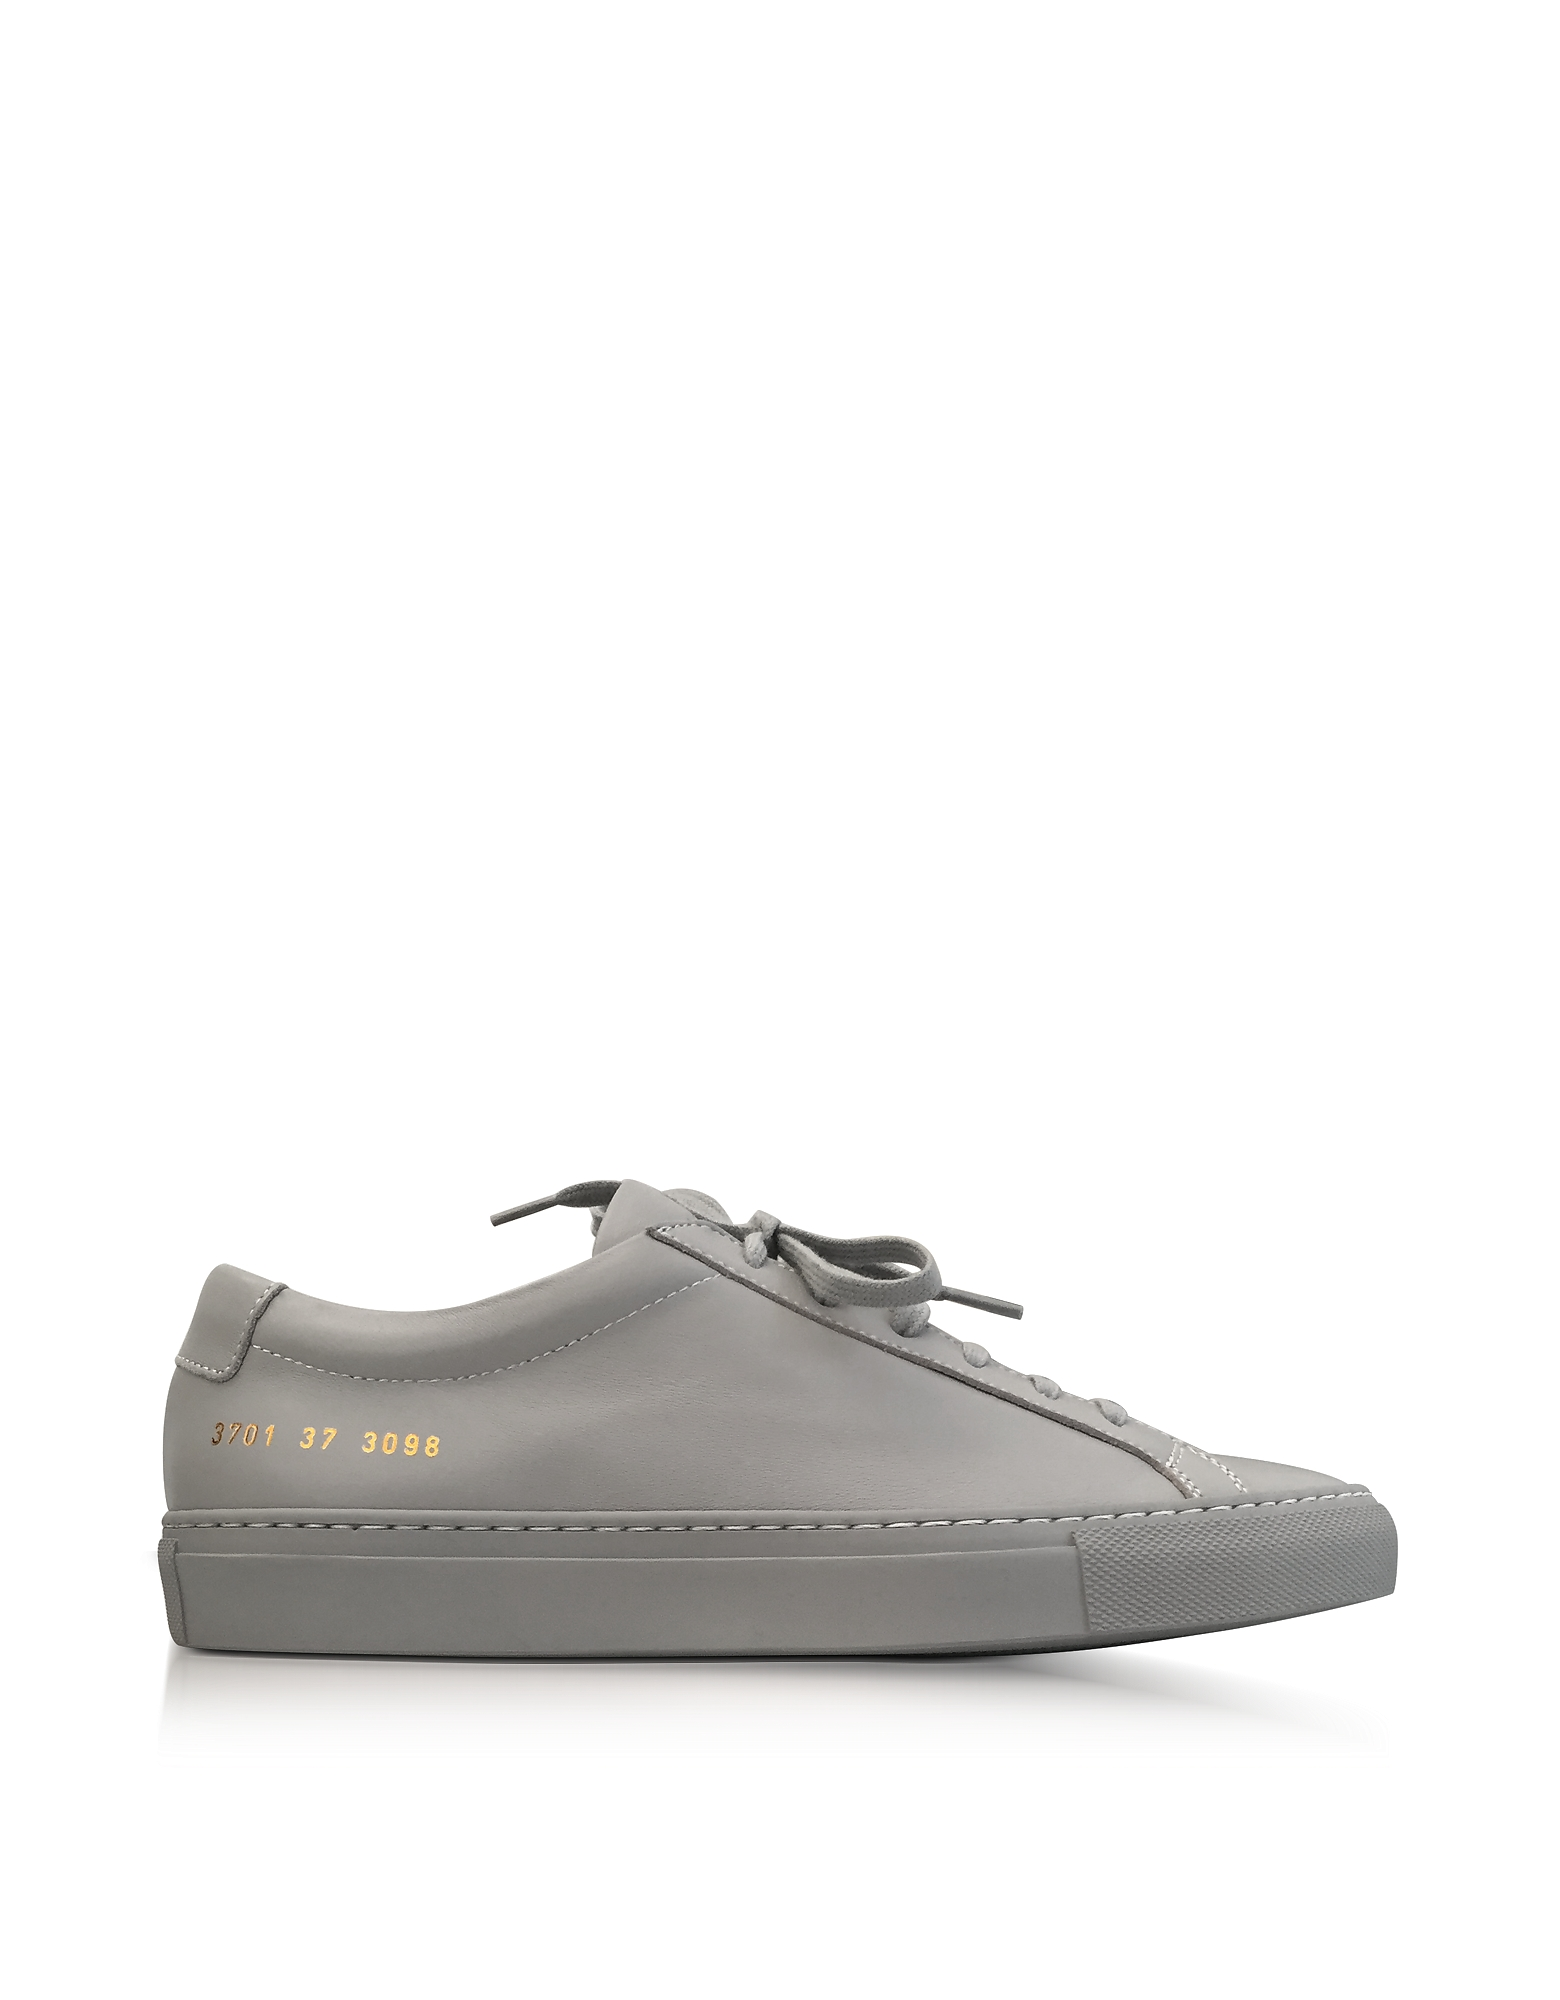 Common Projects Shoes, Ash Leather Achilles Original Low Top Women's Sneakers